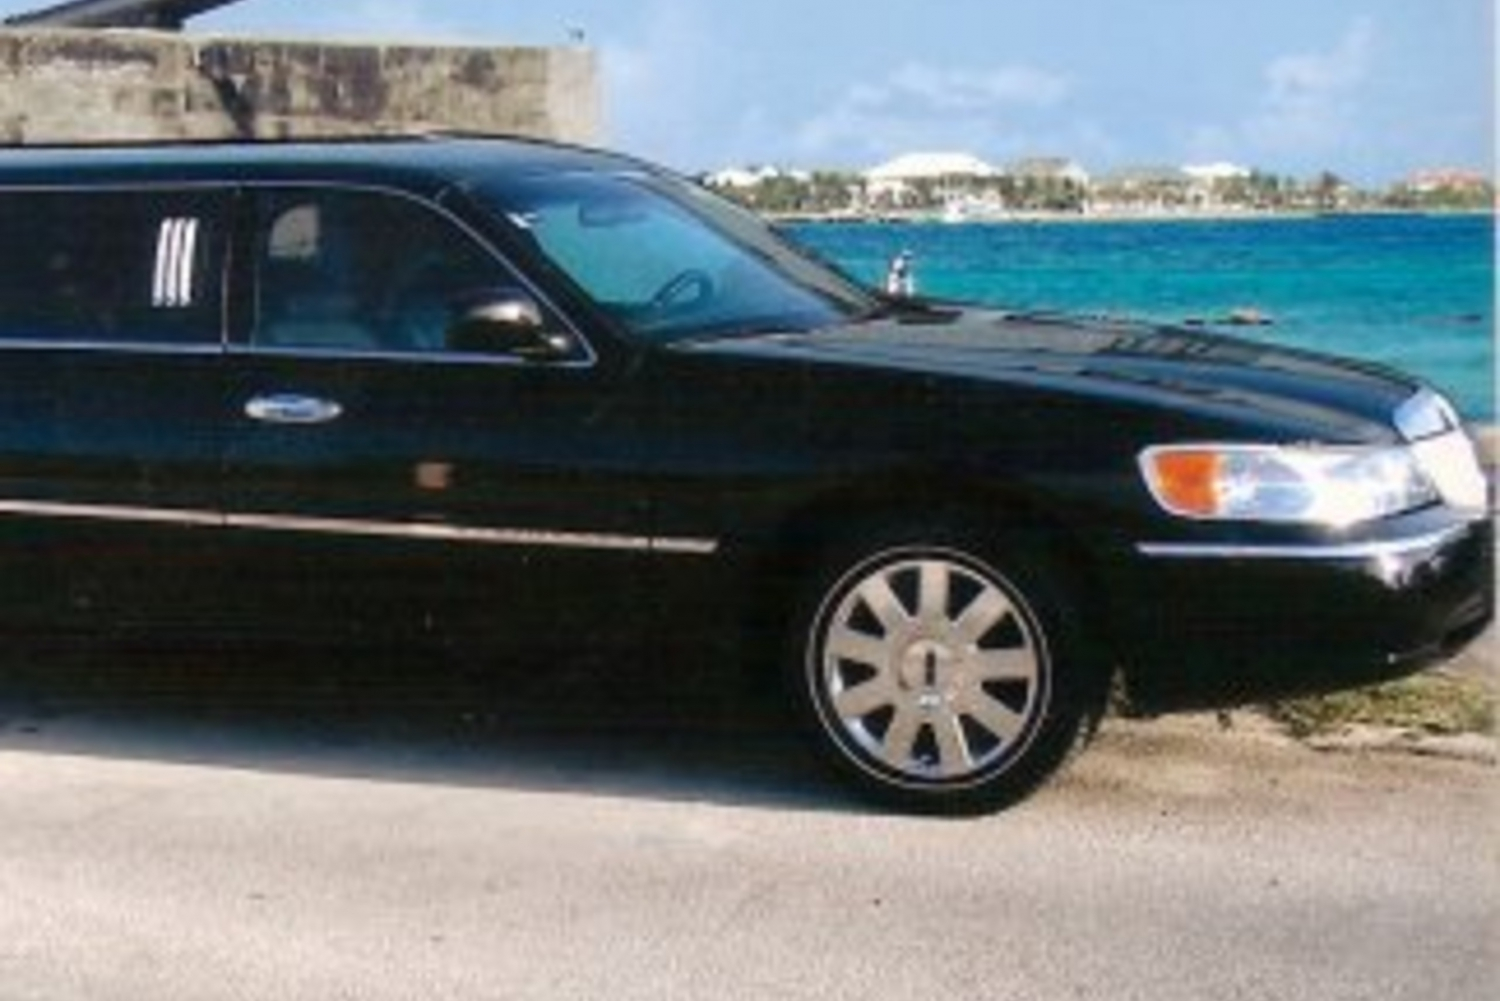 Nassau: Round-Trip Airport Transfer by Limousine